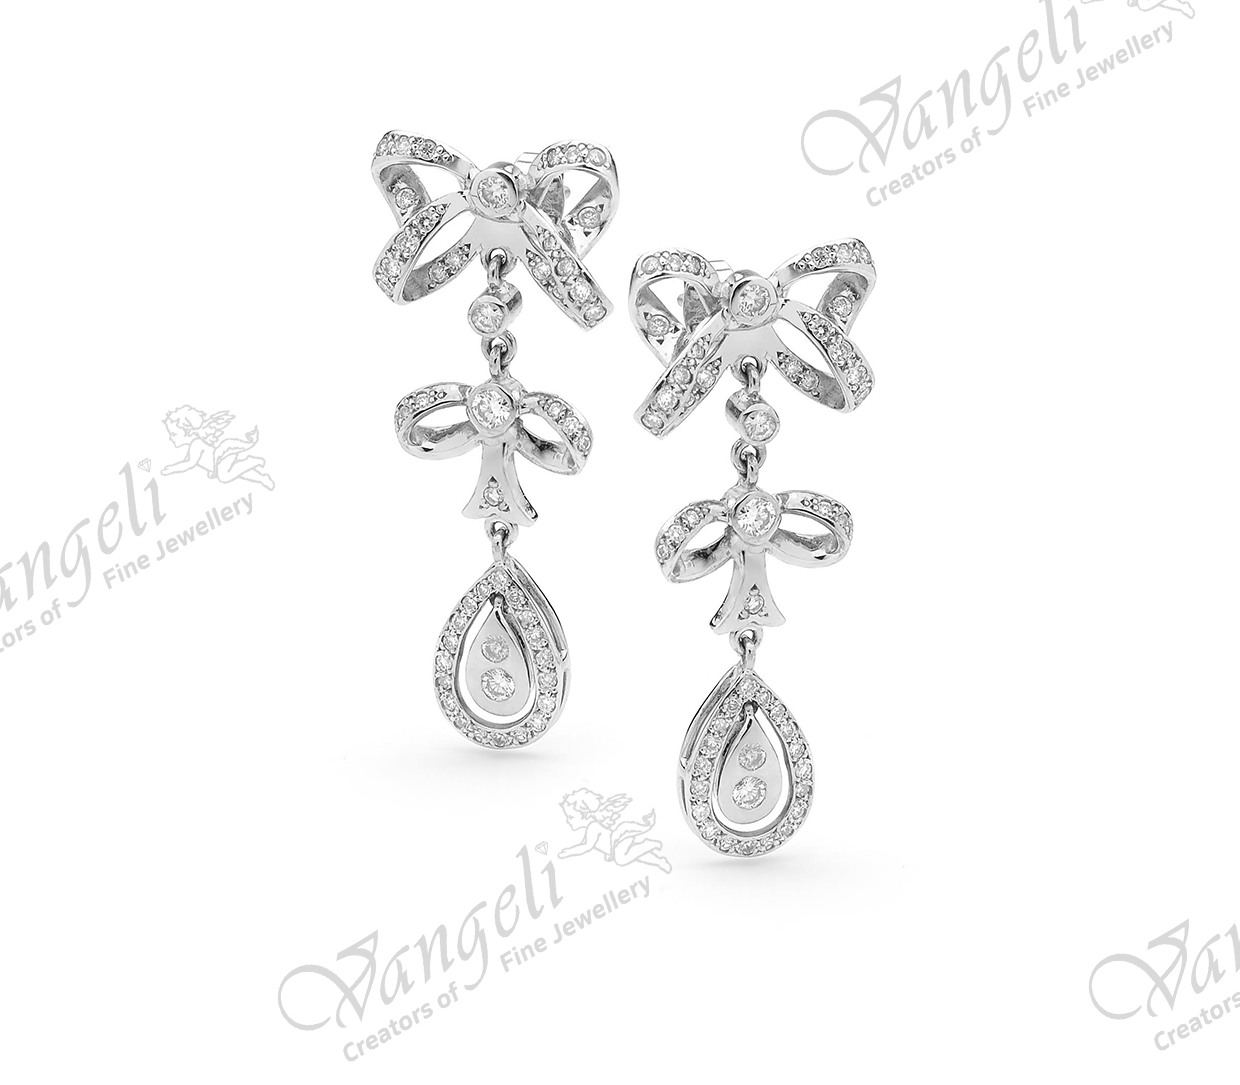 Custom designed 18ct white gold diamond earrings